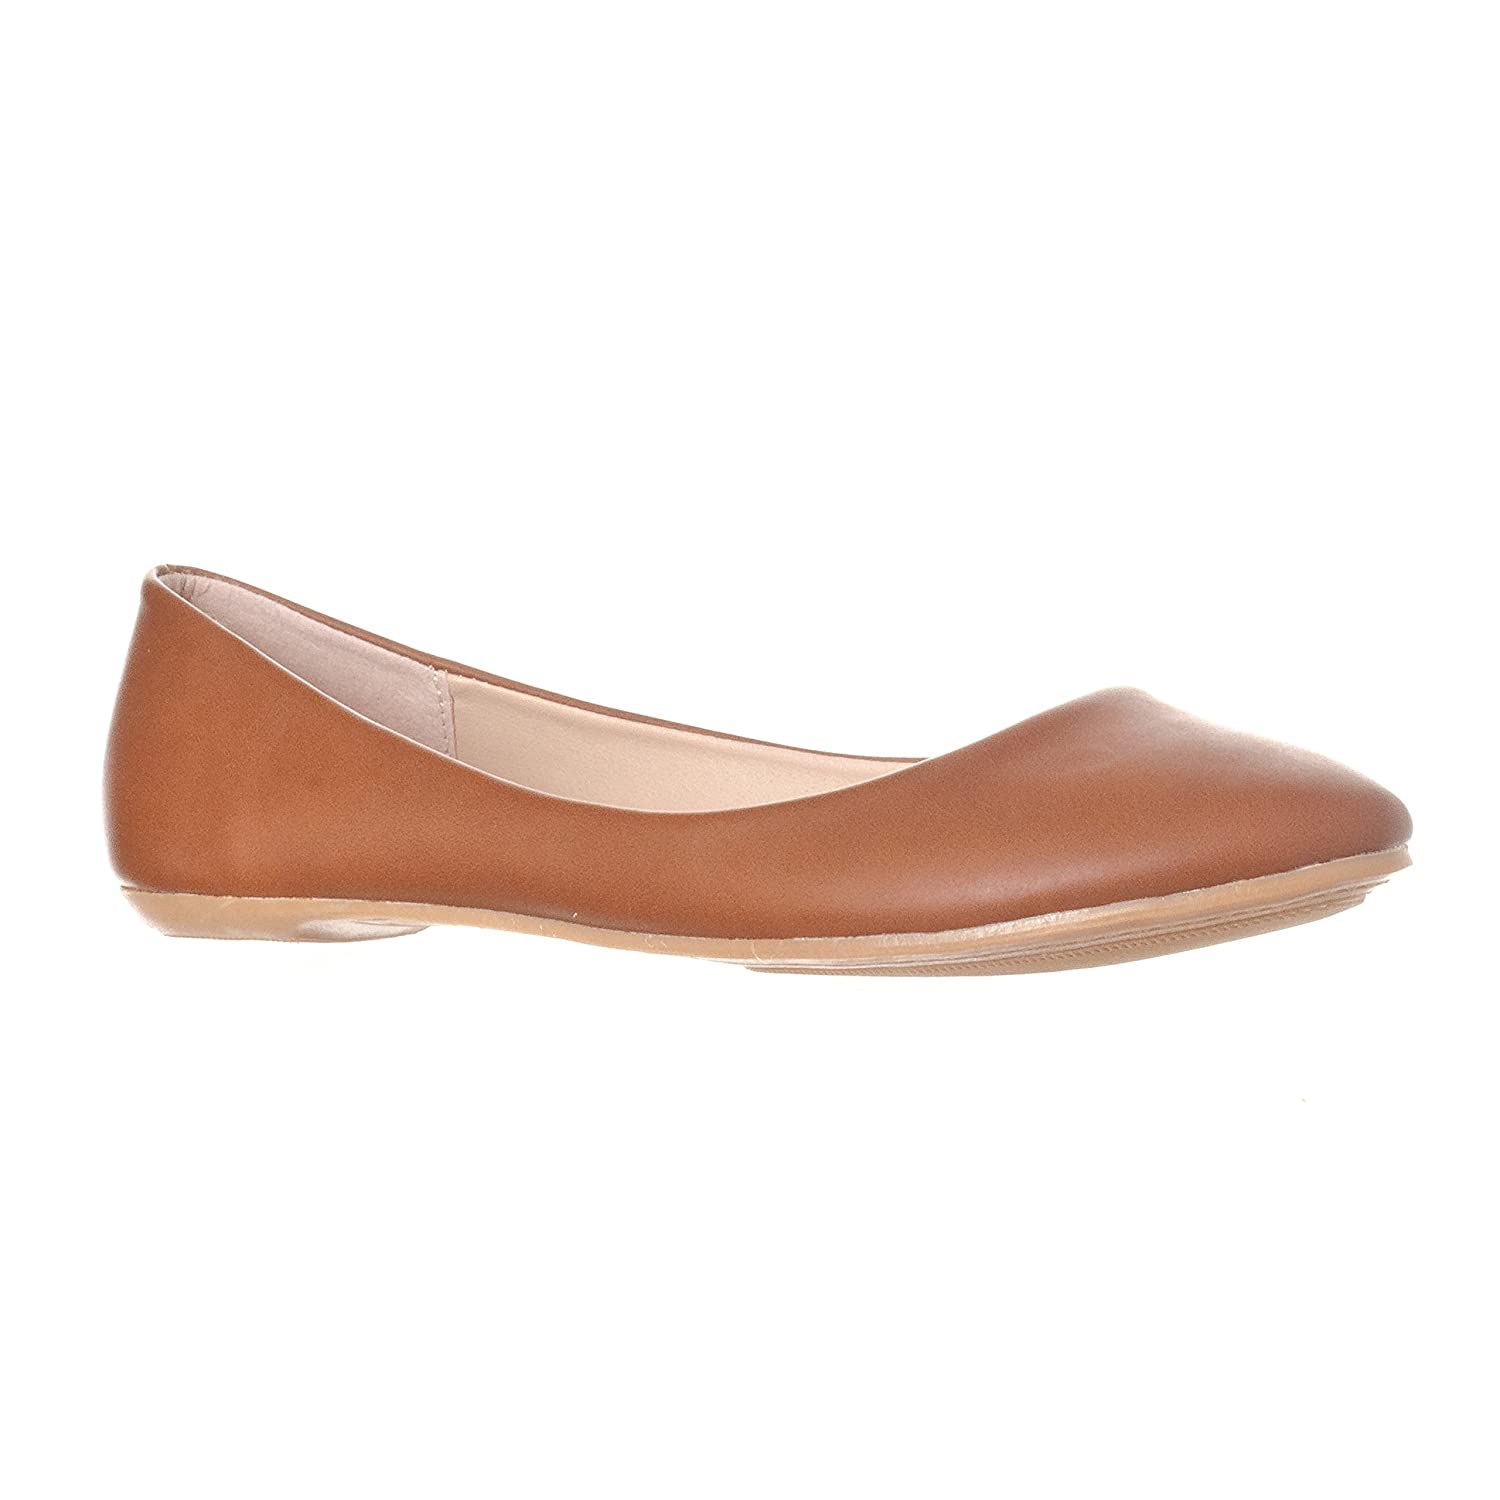 Riverberry Women's Aria Closed, Round Toe Ballet Flat Slip On Shoes B017CC8ES8 6 M US|Brown Pu